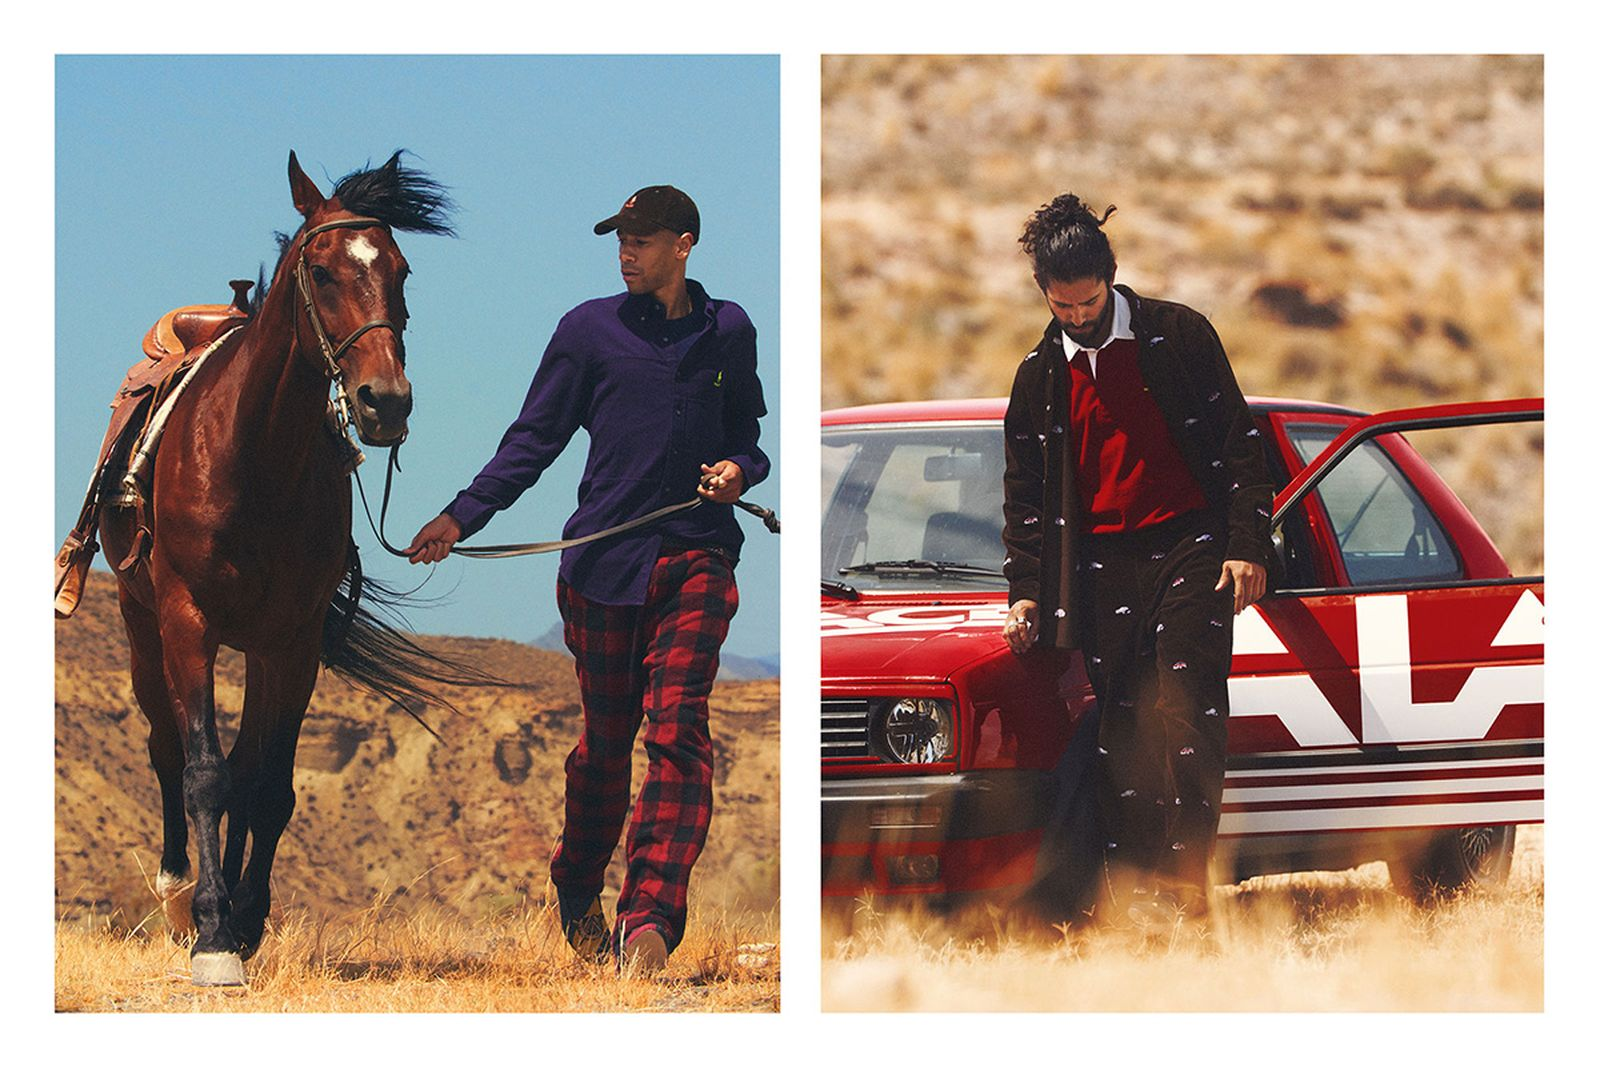 palace ralph lookbook polo ralph lauren